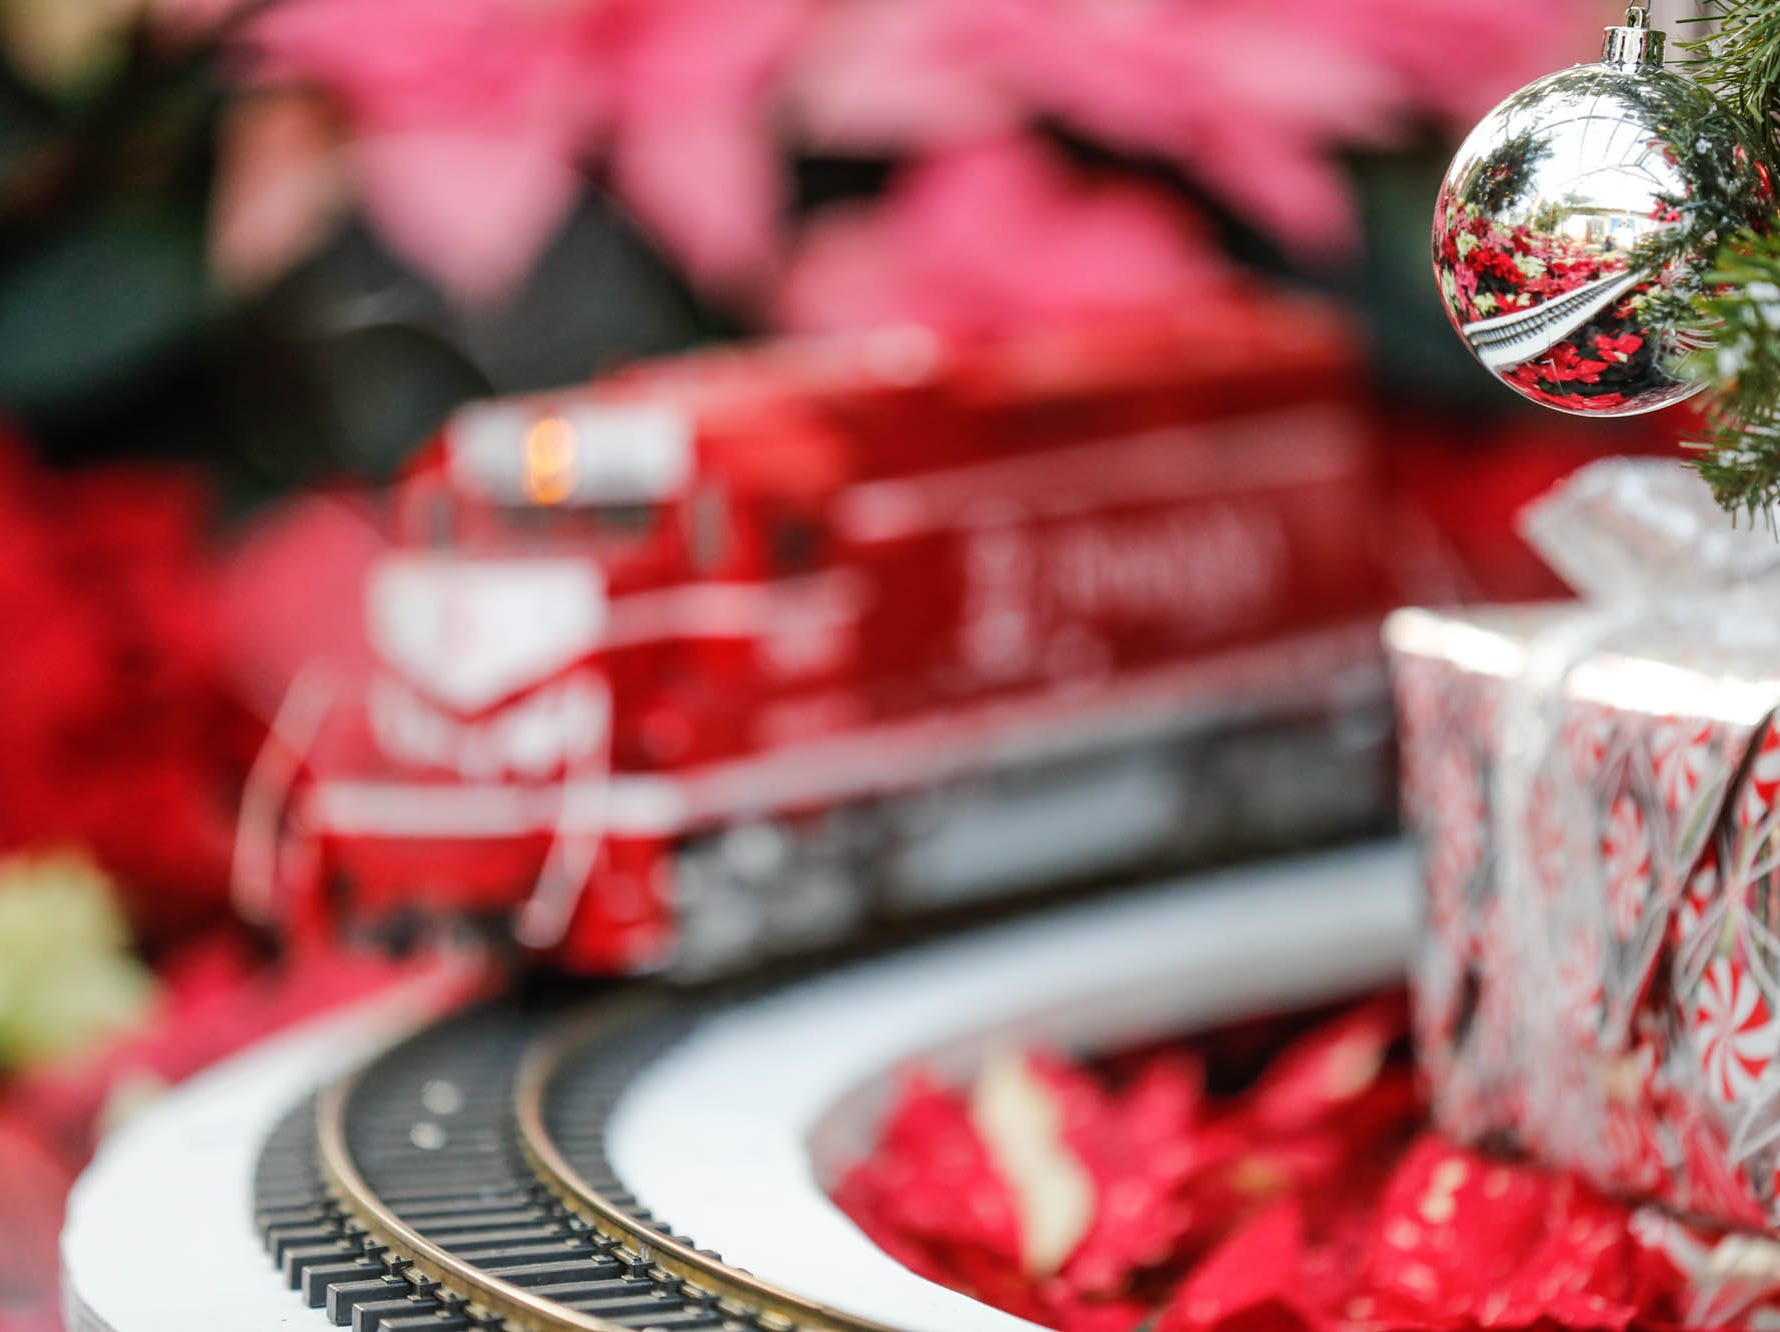 A Christmas ornament reflects the train tracks in the Conservatory Crossing holiday display at the Garfield Park Conservatory on Saturday, Dec. 29, 2018.